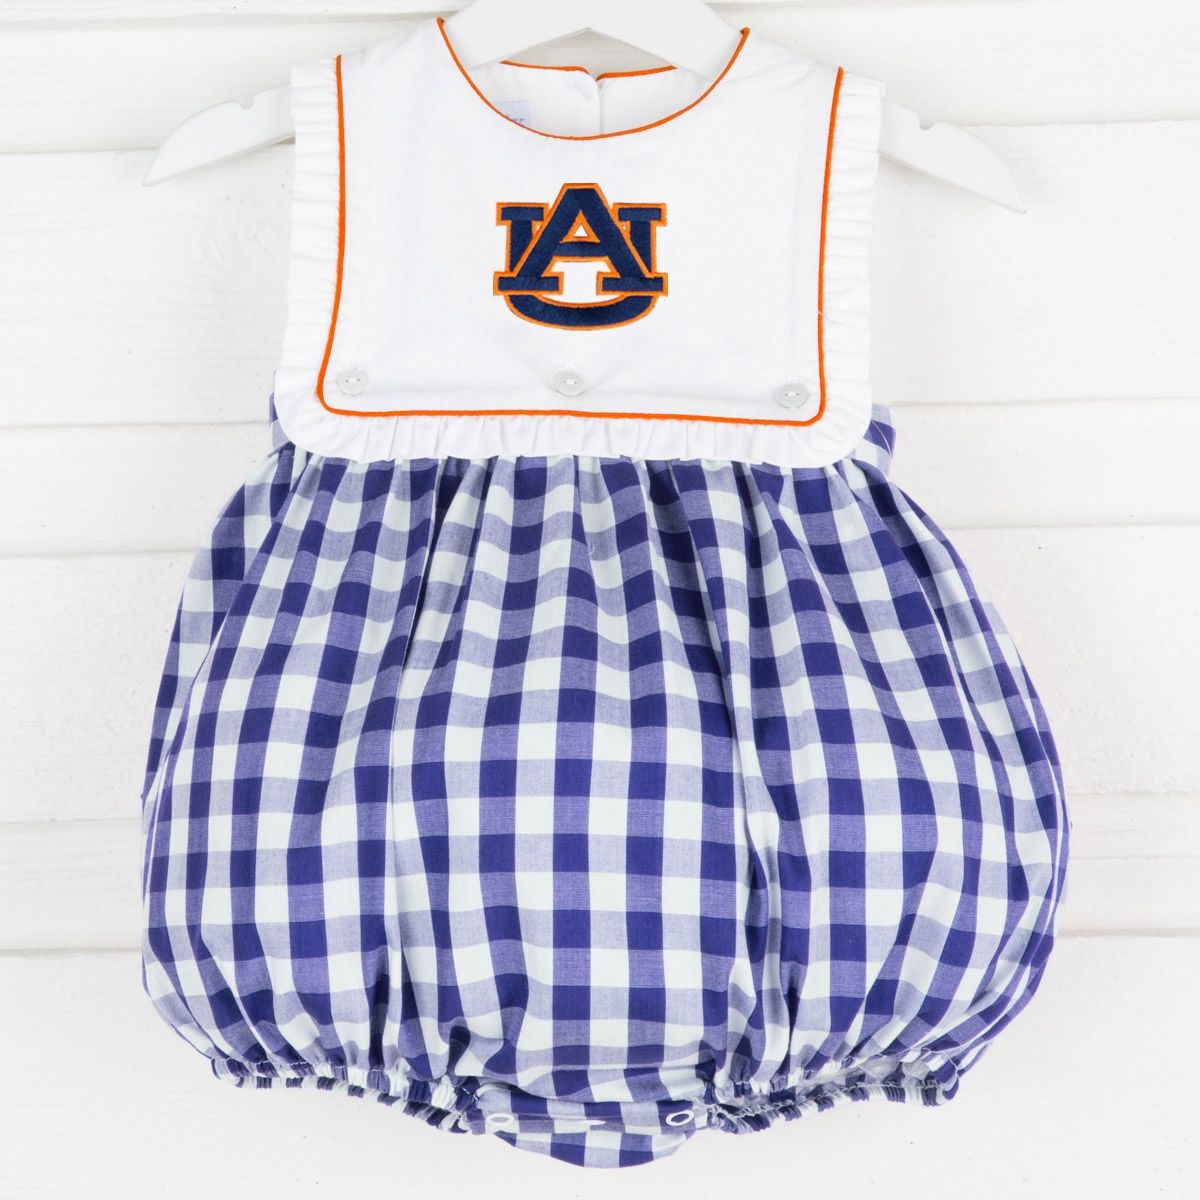 fae8f23a7 Go Tigers! Cheer on Auburn with this adorable embroidered bubble. Your  little one will